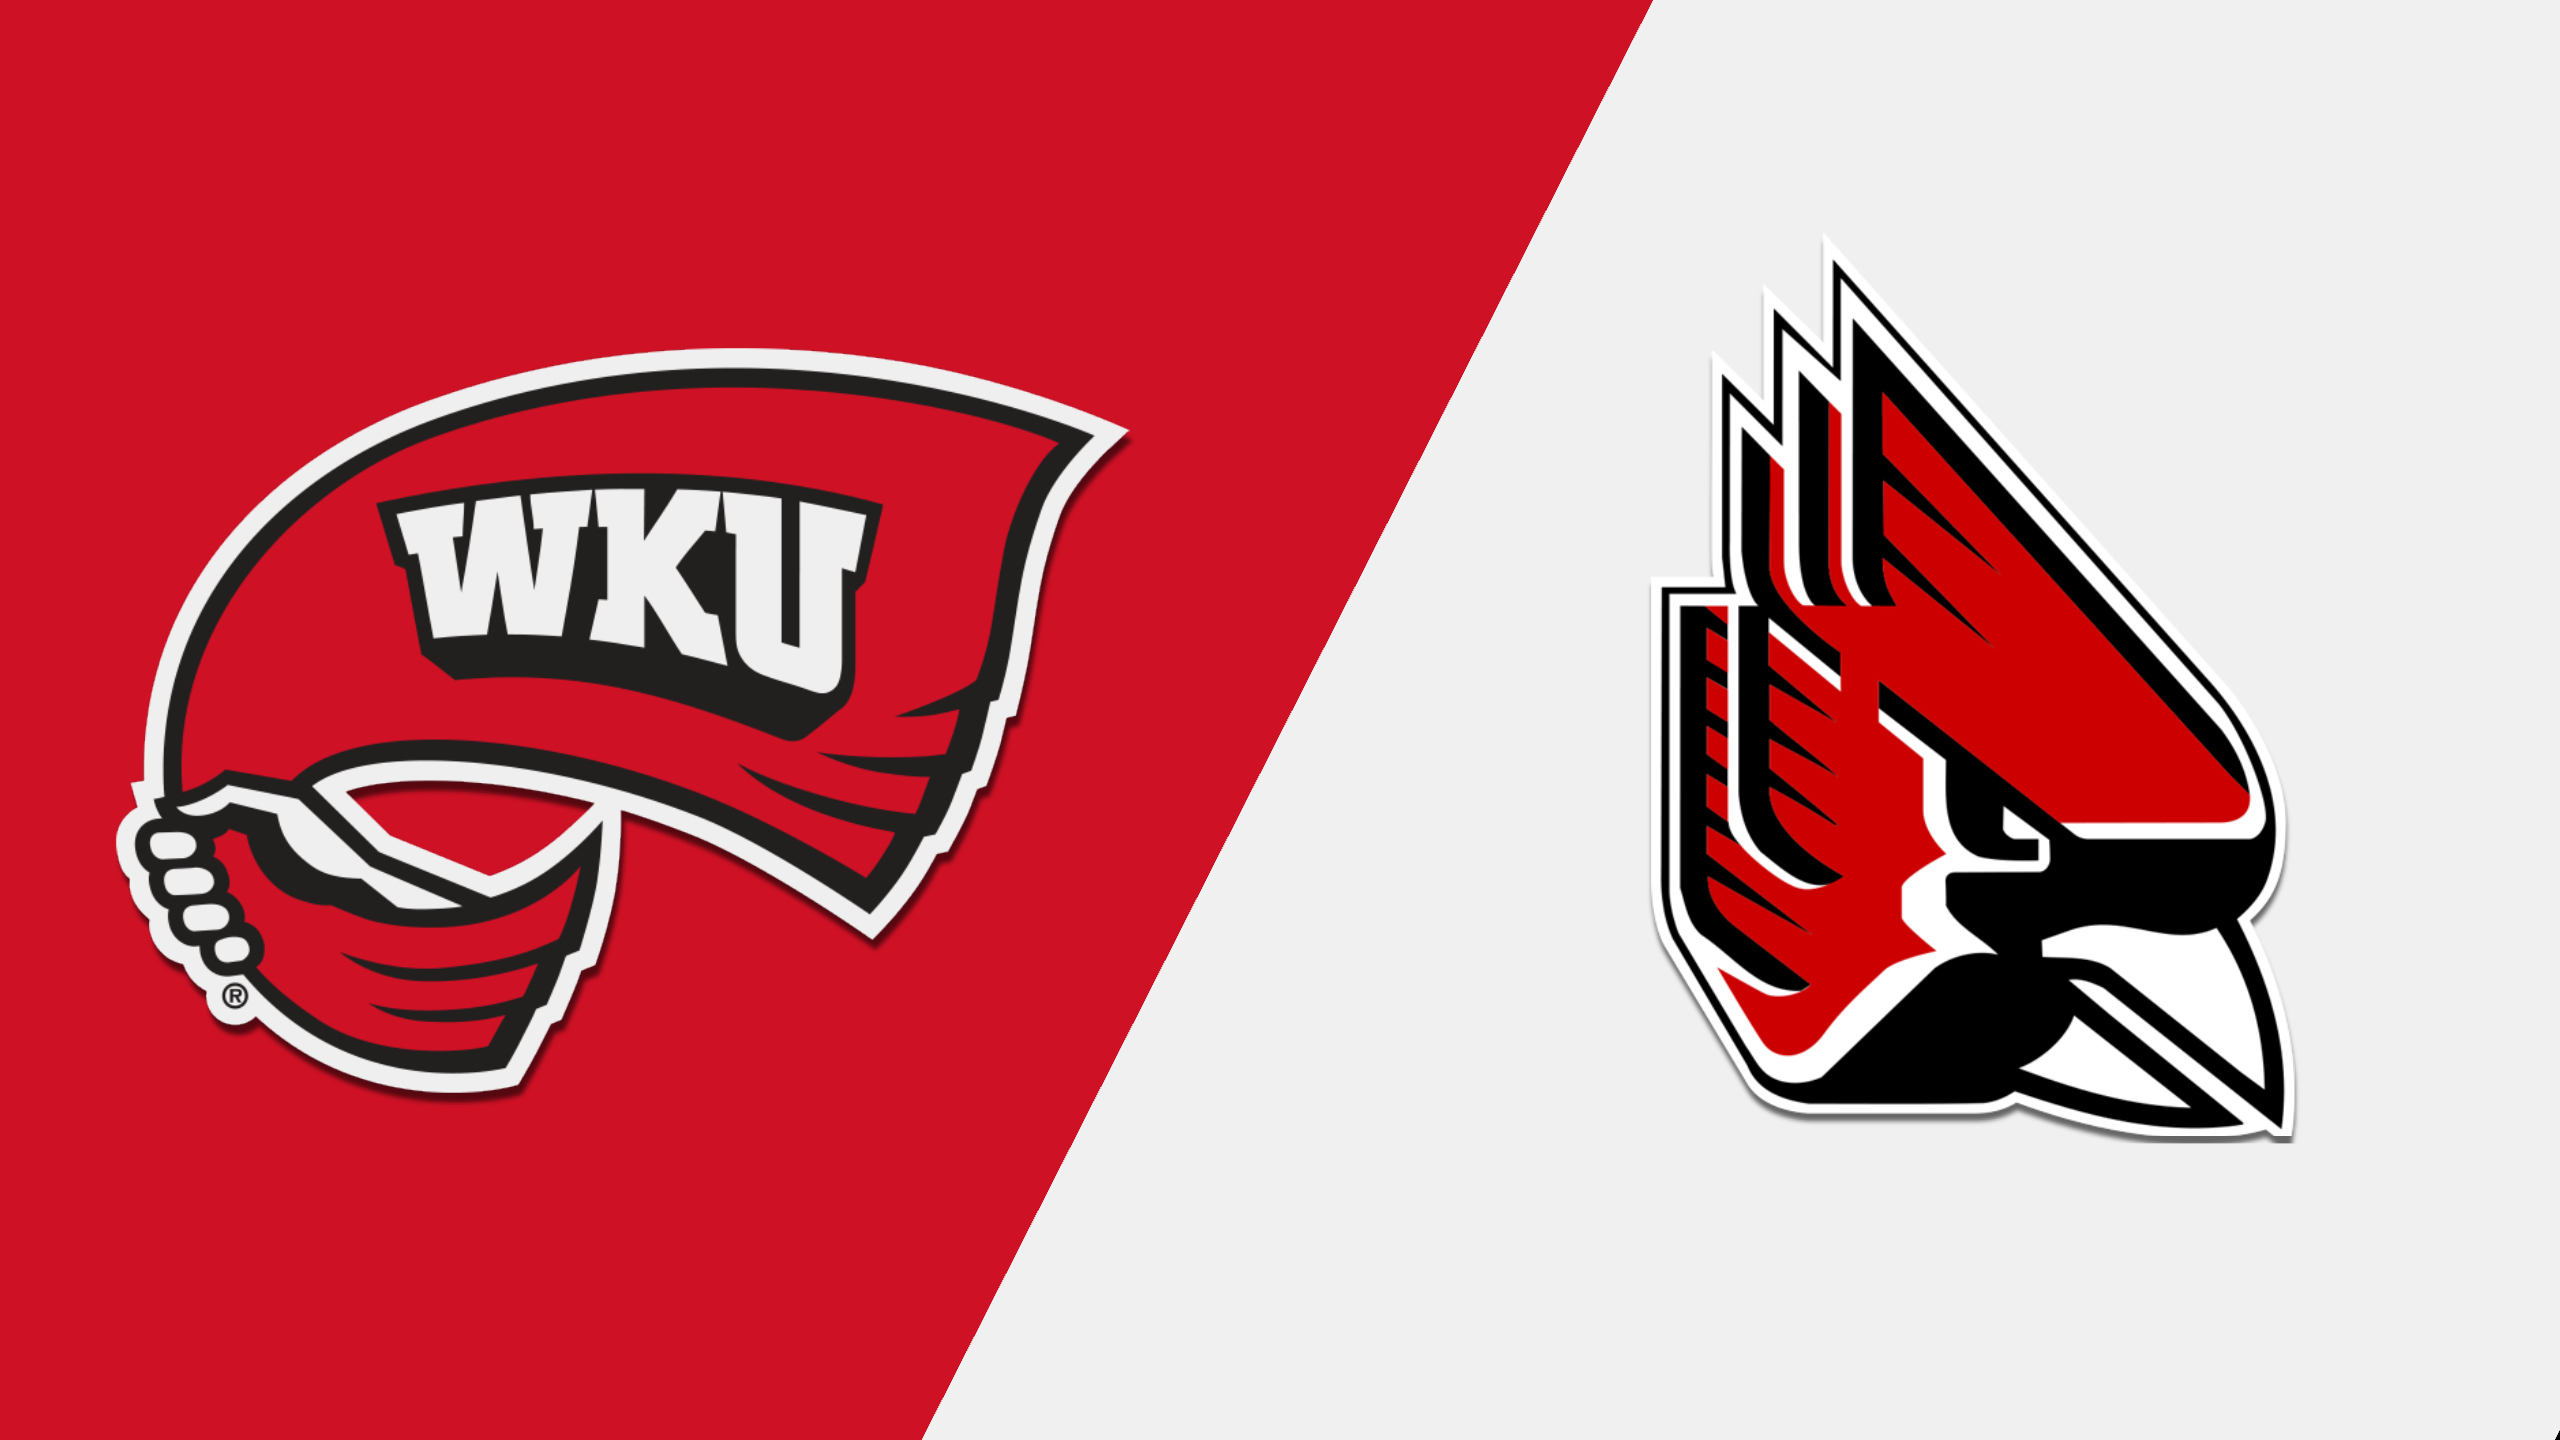 Western Kentucky vs. Ball State (Football)